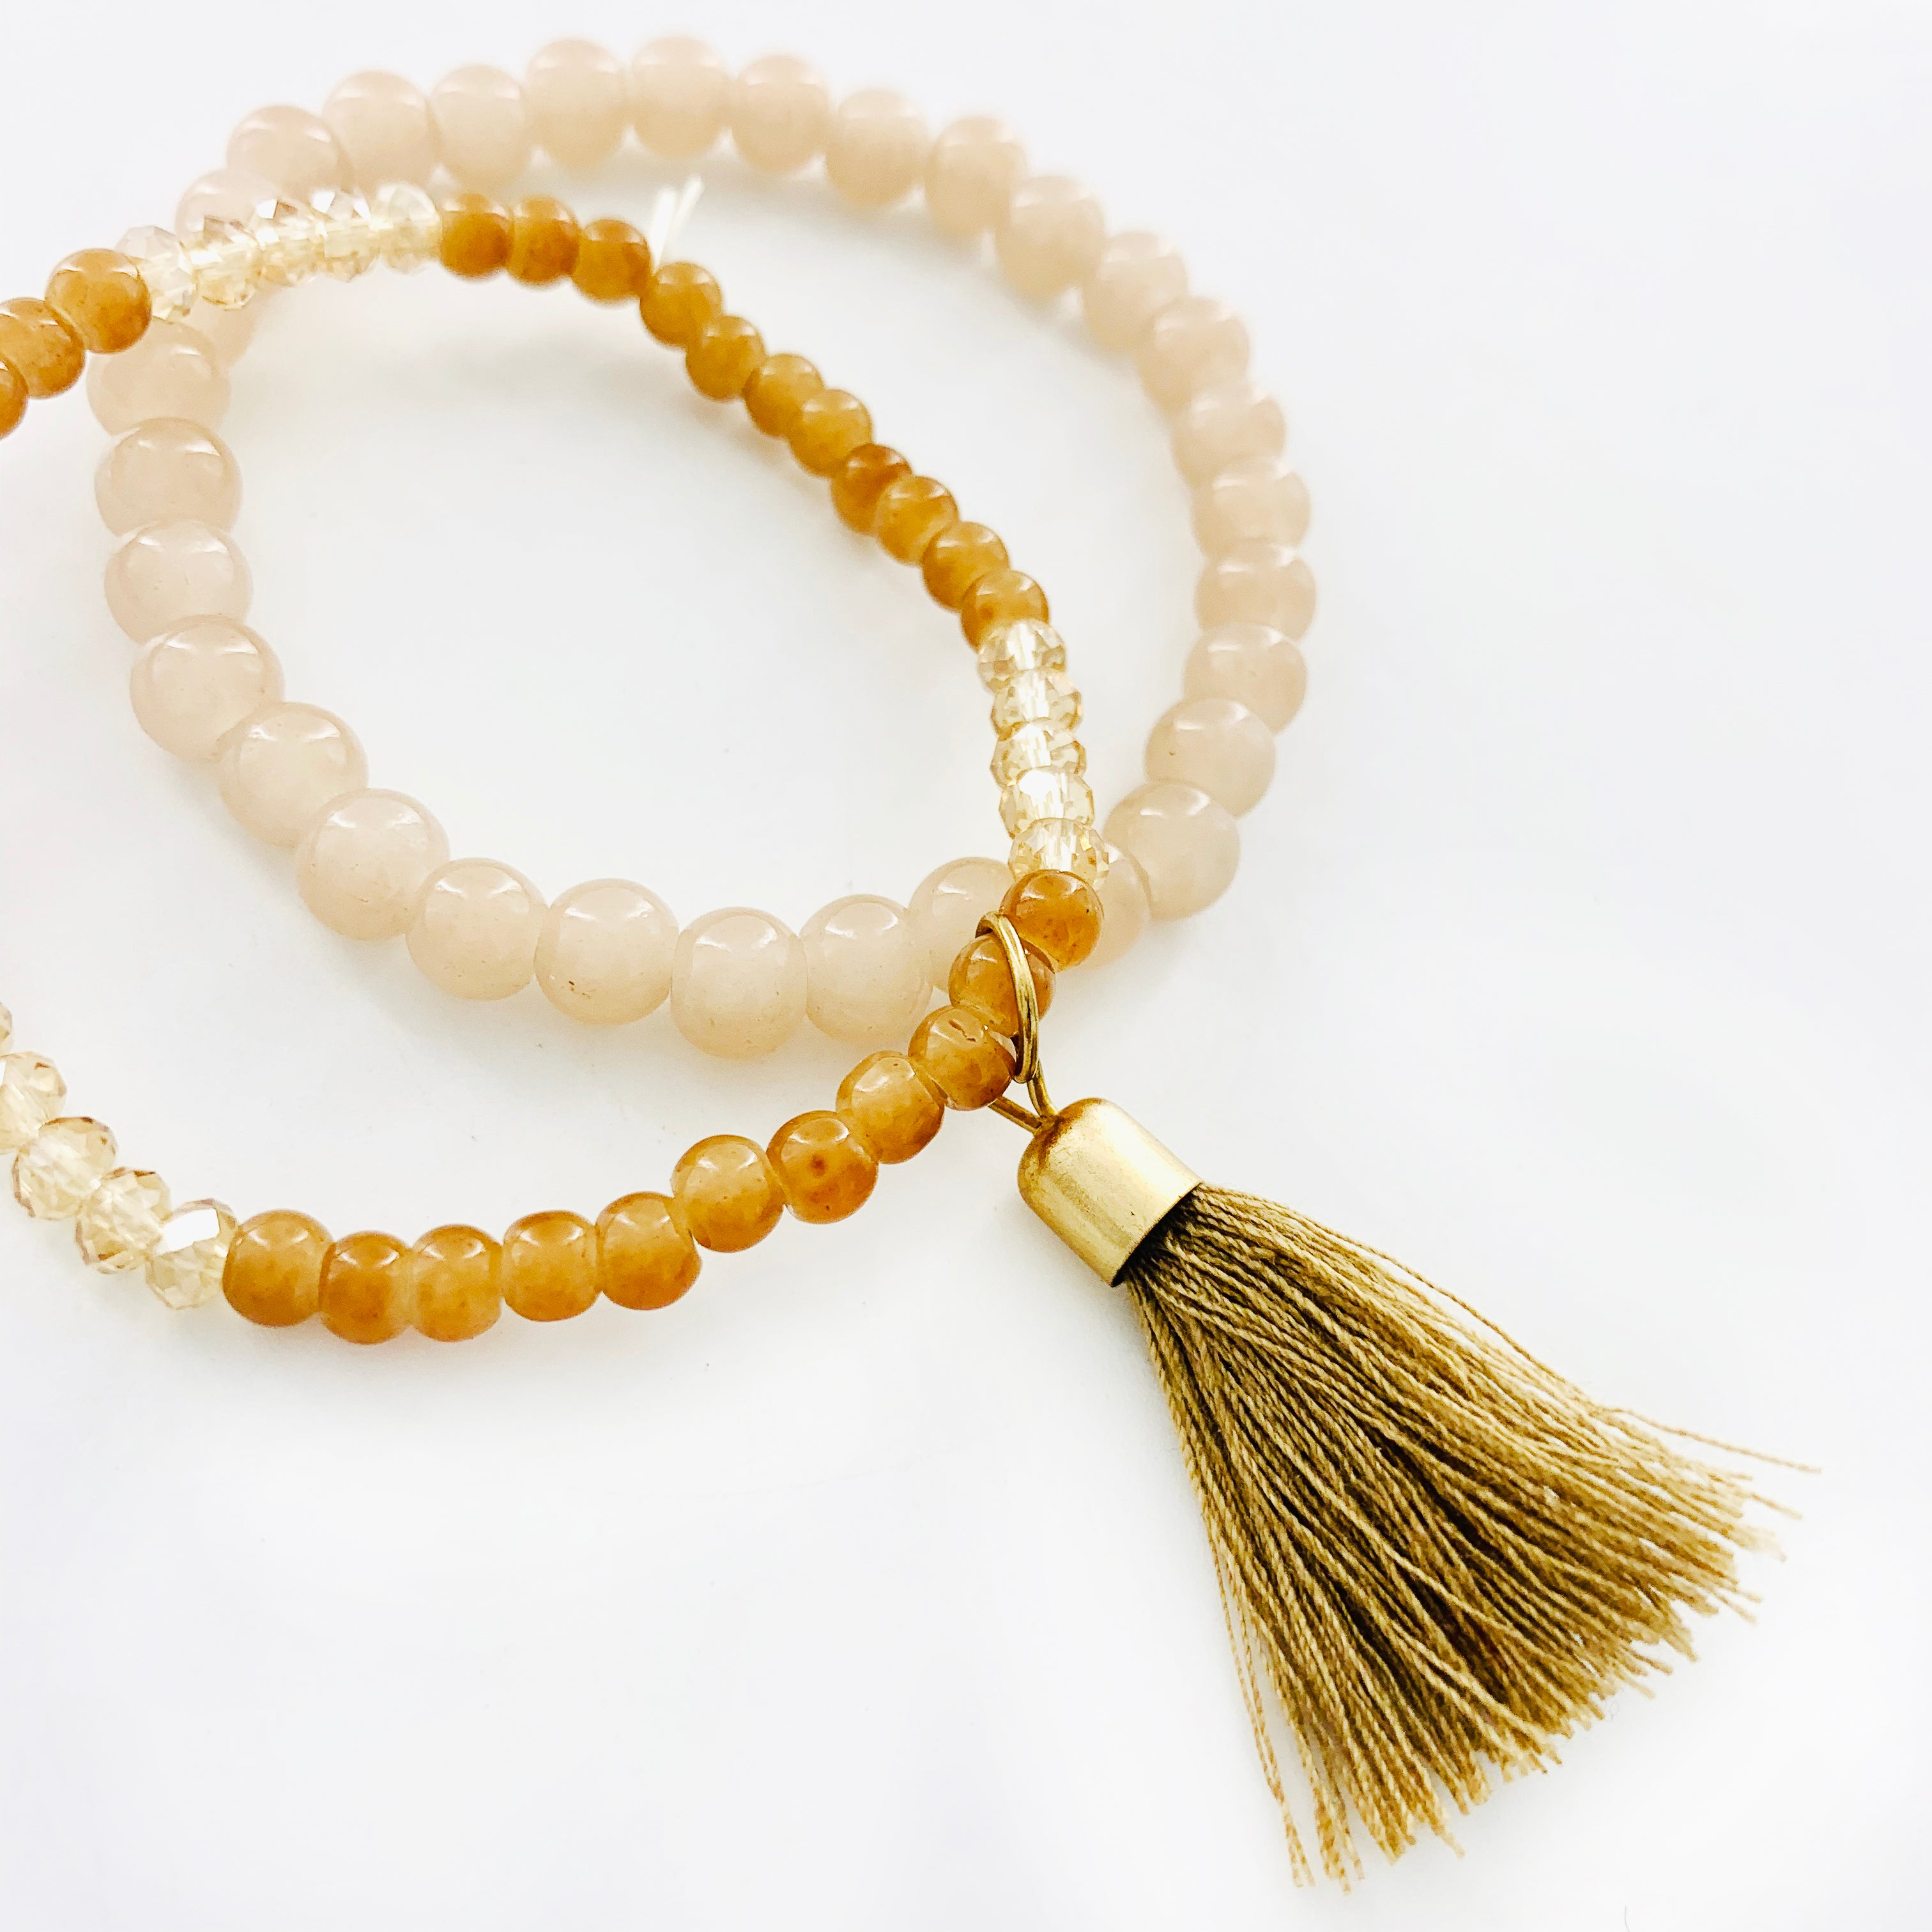 Nude beaded bracelets with tassel charm